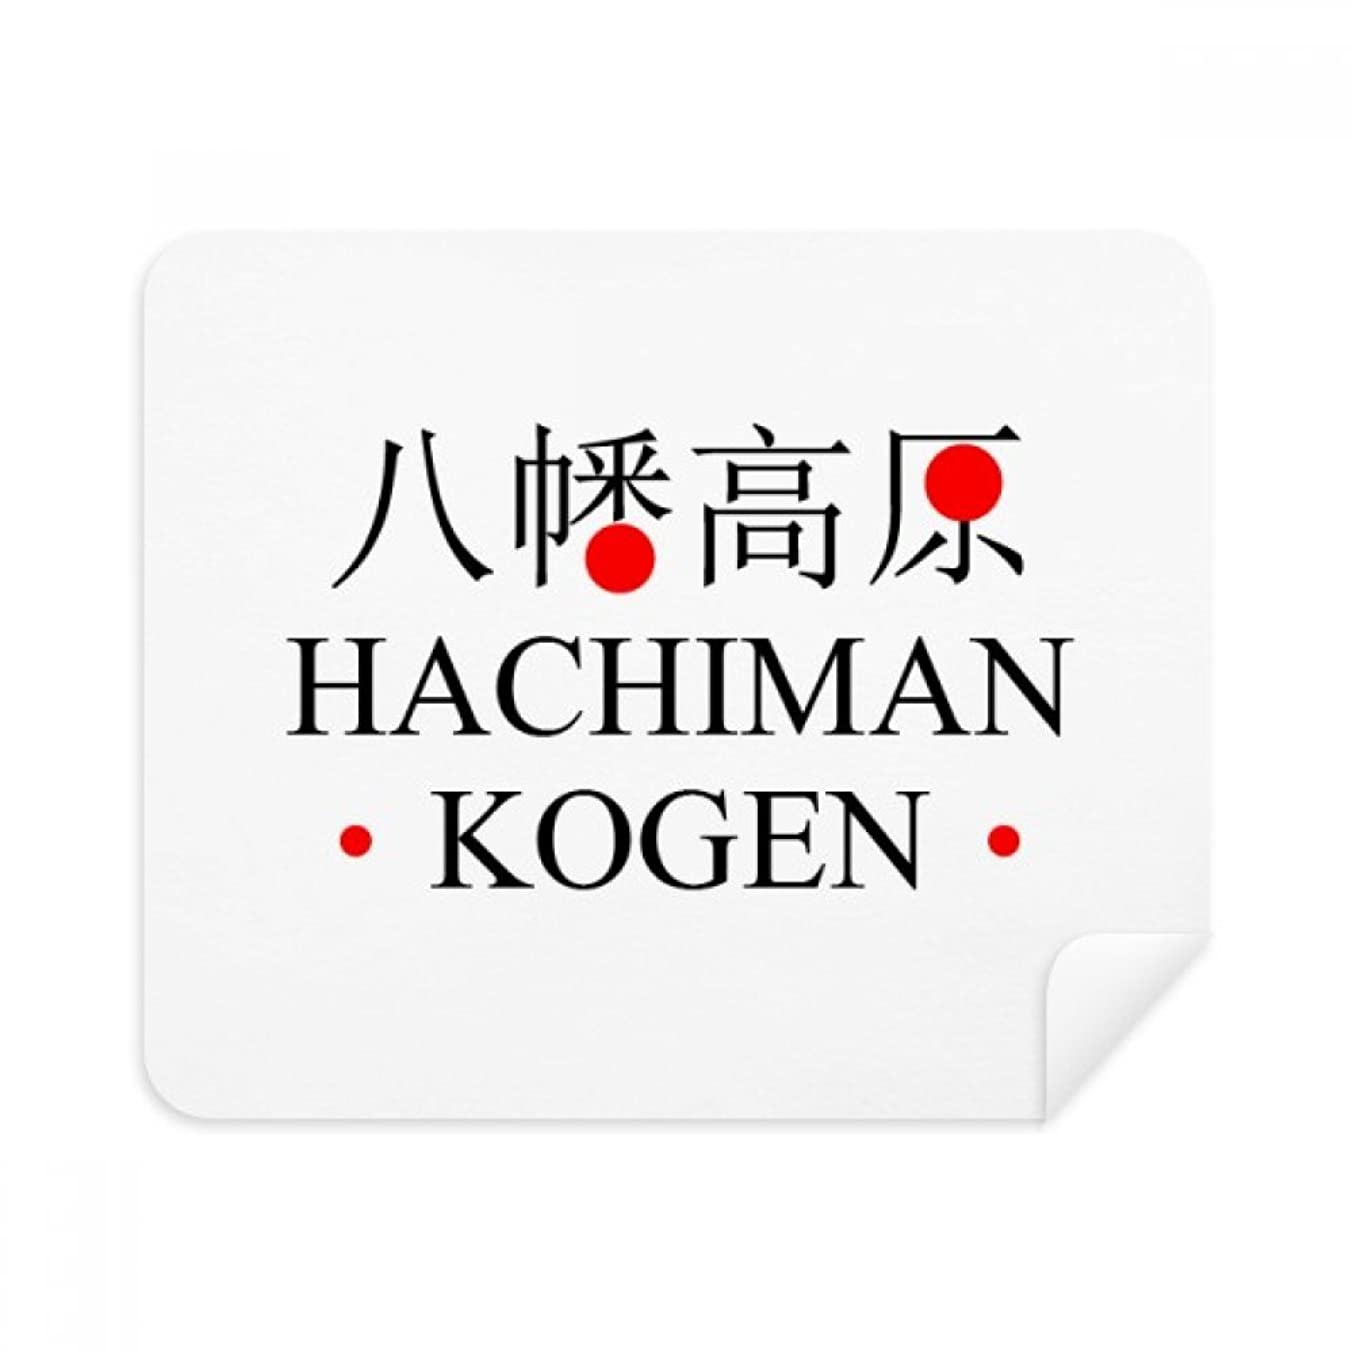 Hachiman Kogen Japaness City Name Red Phone Screen Cleaner Glasses Cleaning Cloth 2pcs Suede Fabric